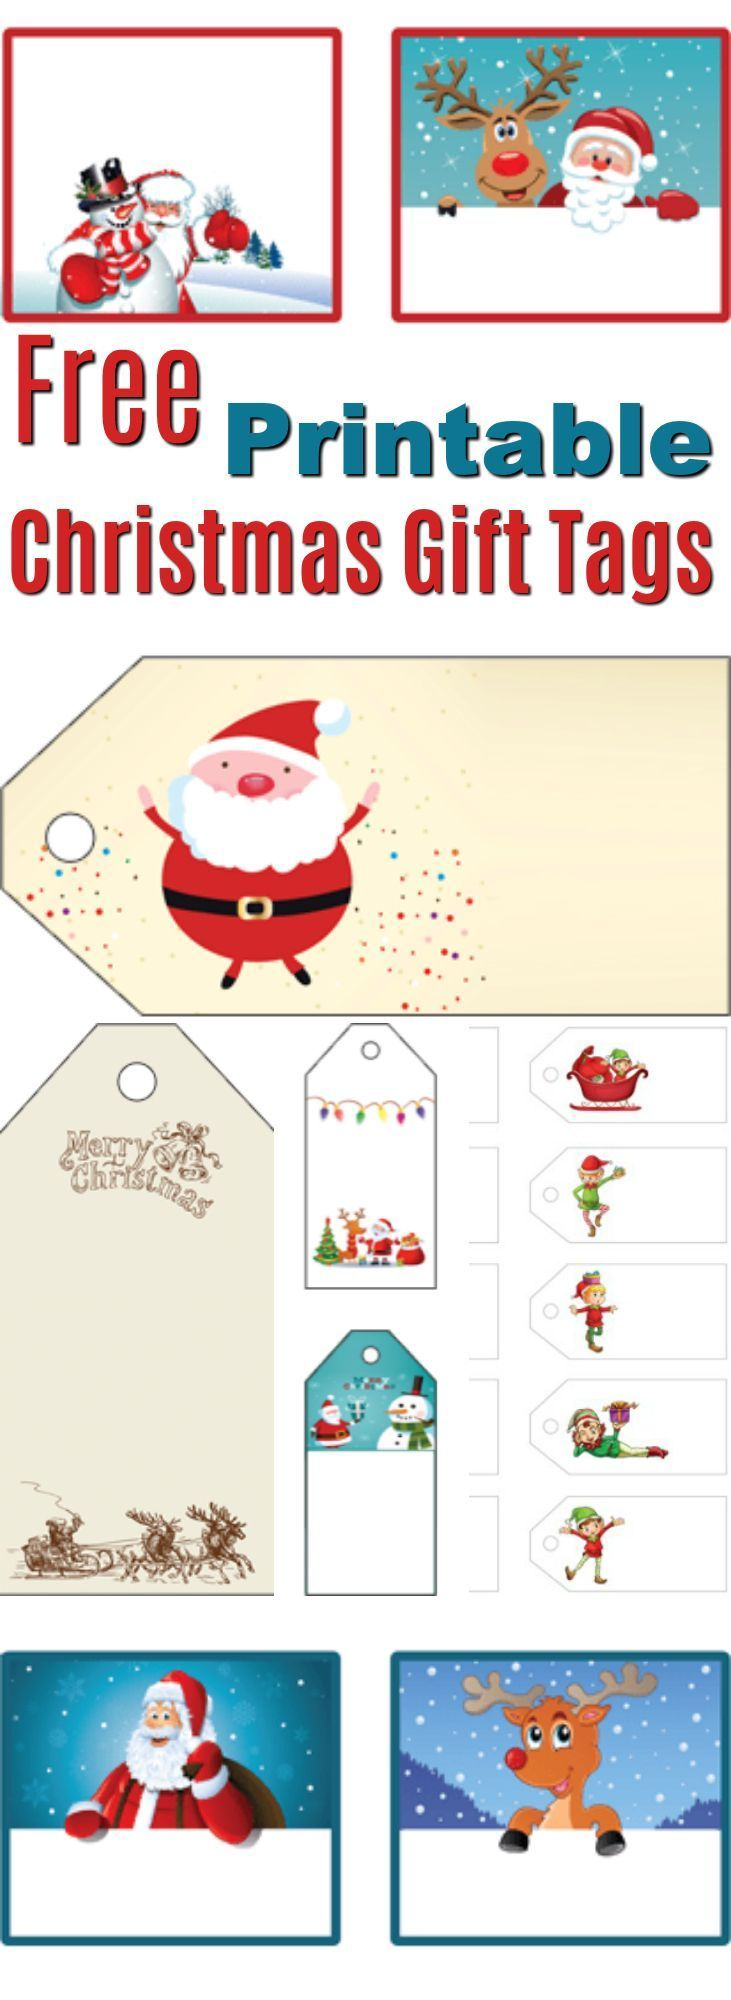 Do you love Free Printable Christmas Gift Tags? Us too! That's why we've created these adorable Free Printable Christmas Gift Tags and Labels! Just Click and Print!